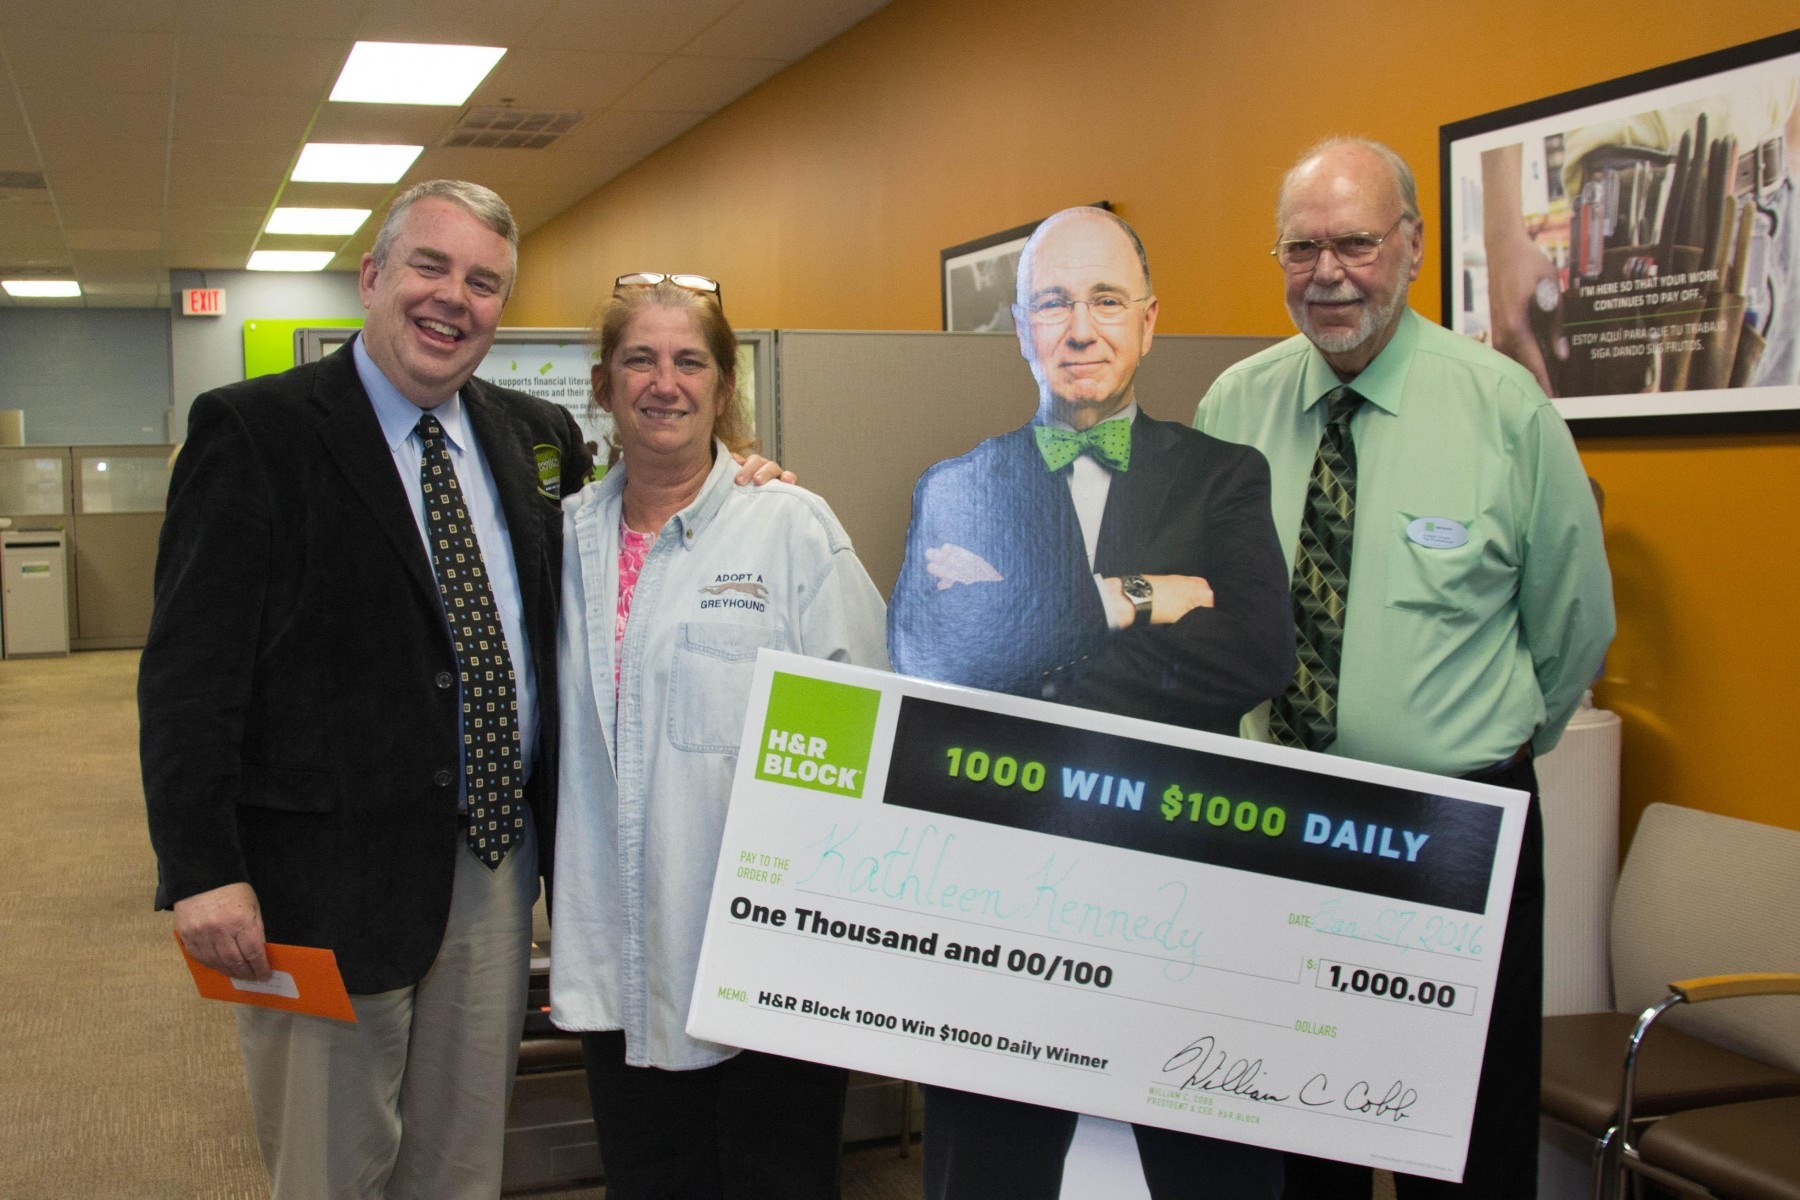 Deland, Fla. Winner of H&R Block's 1,000 Win $1,000 Sweepstakes Celebrates at Tax Office